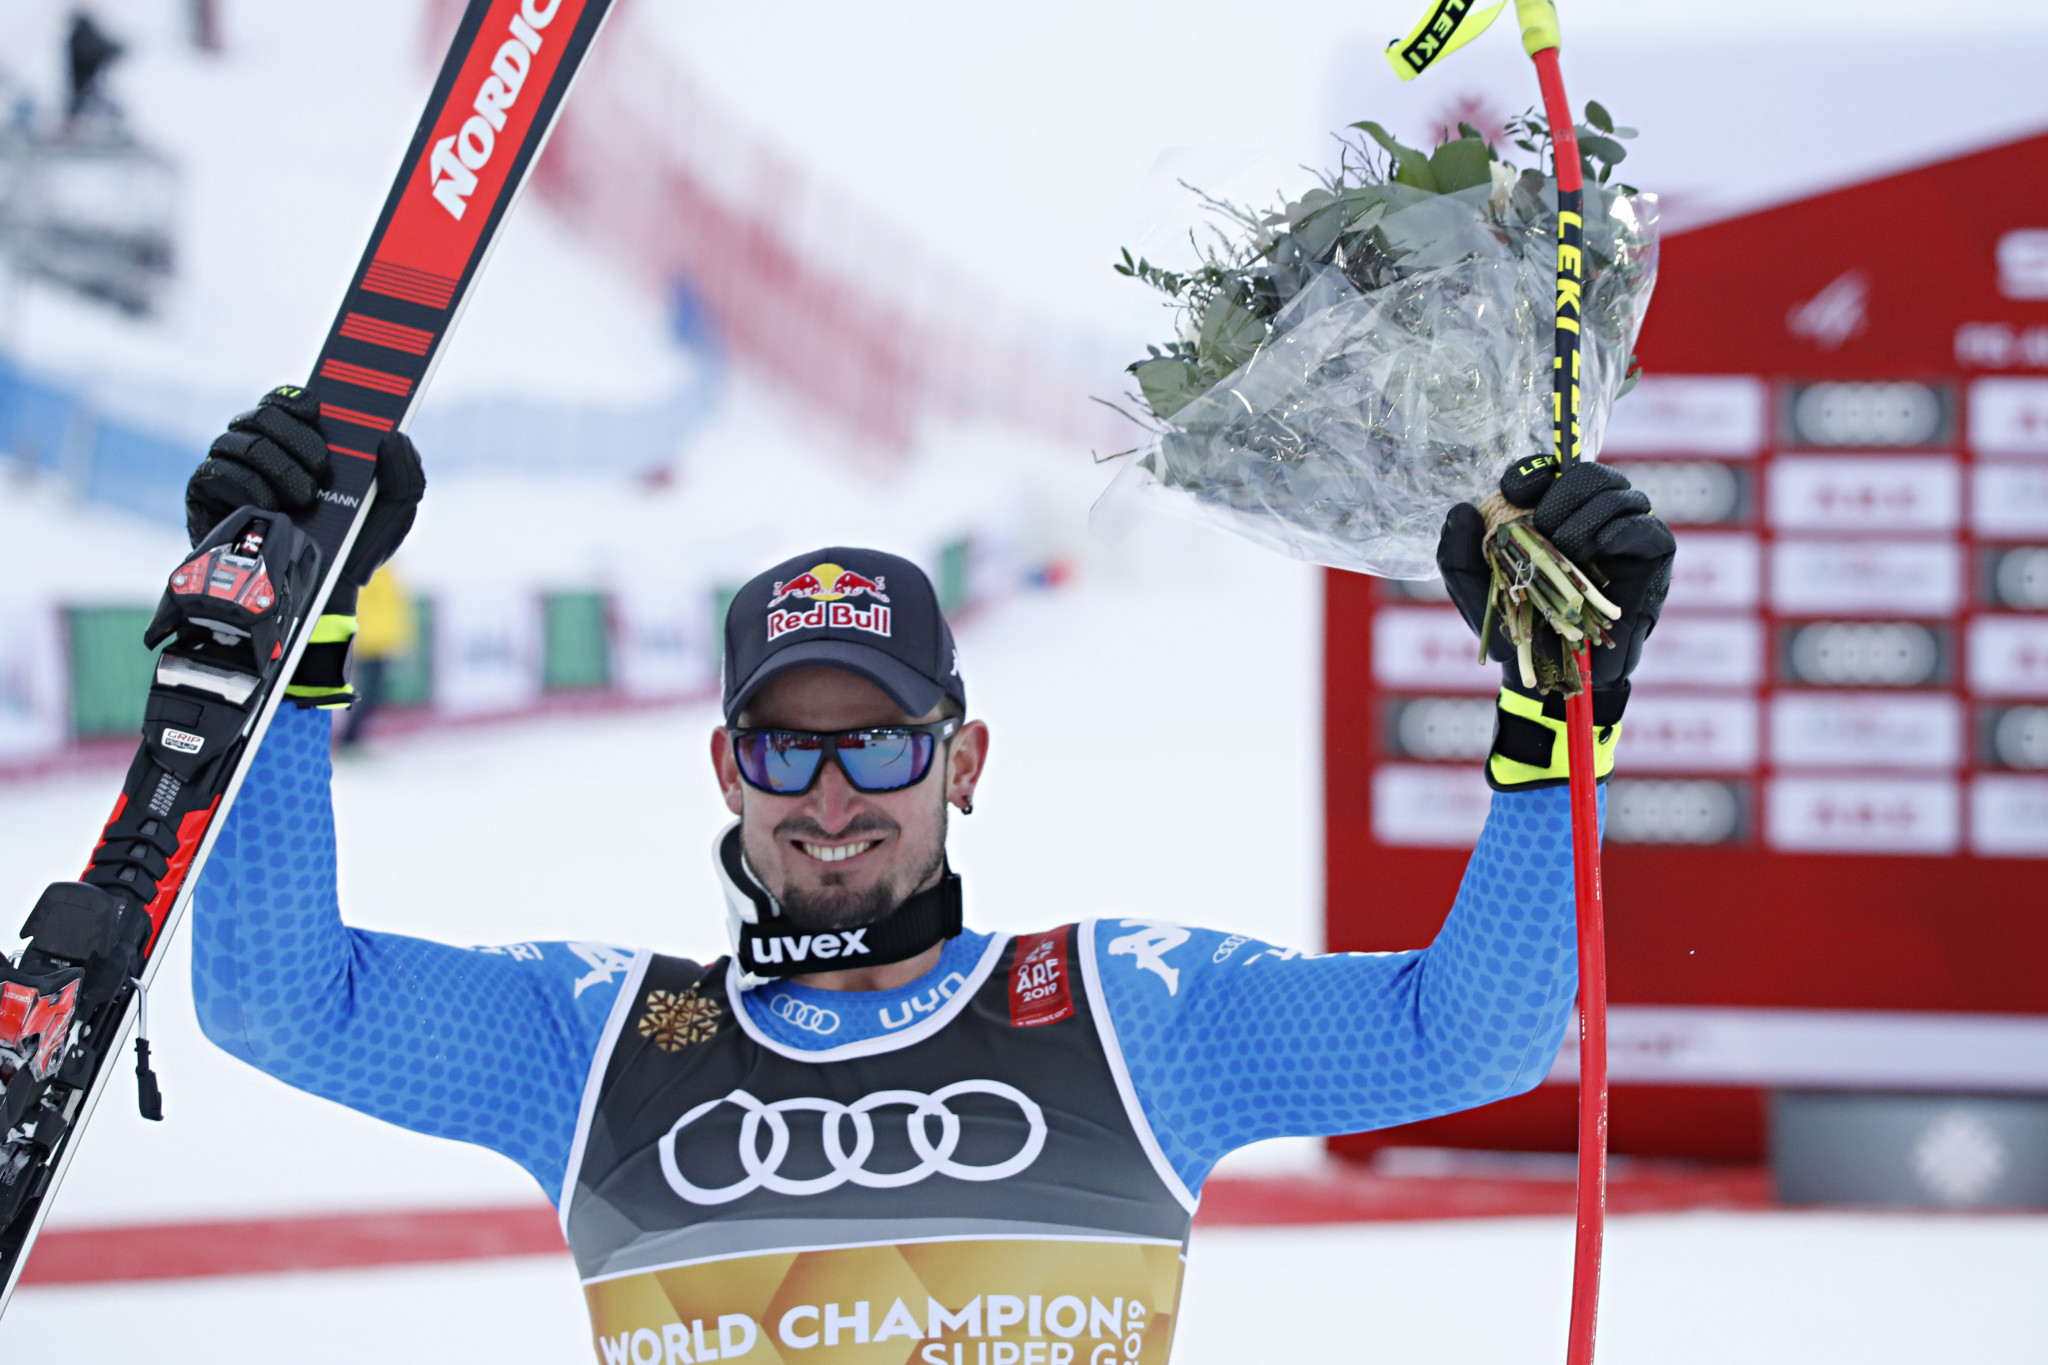 Paris wins world super-G gold amid poor visibility in Åre